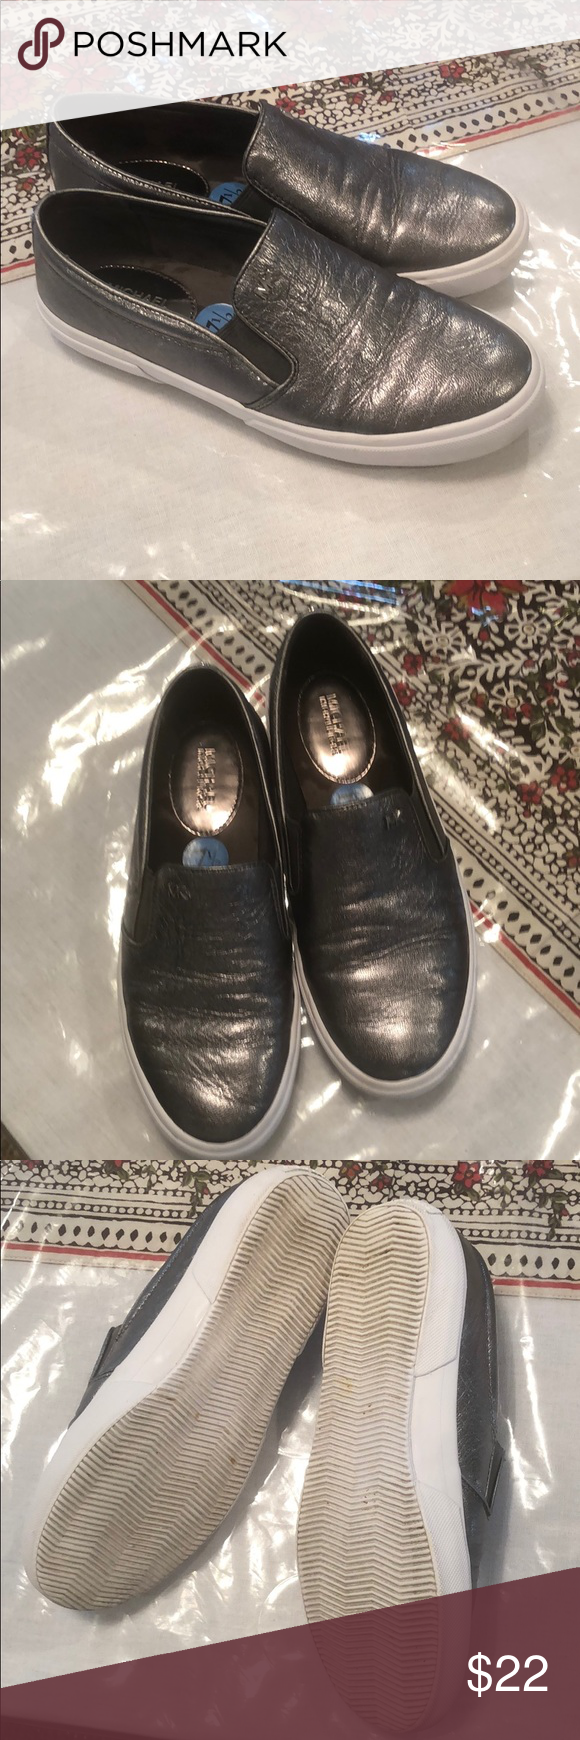 Michael Kors Pewter Leather Chucks in